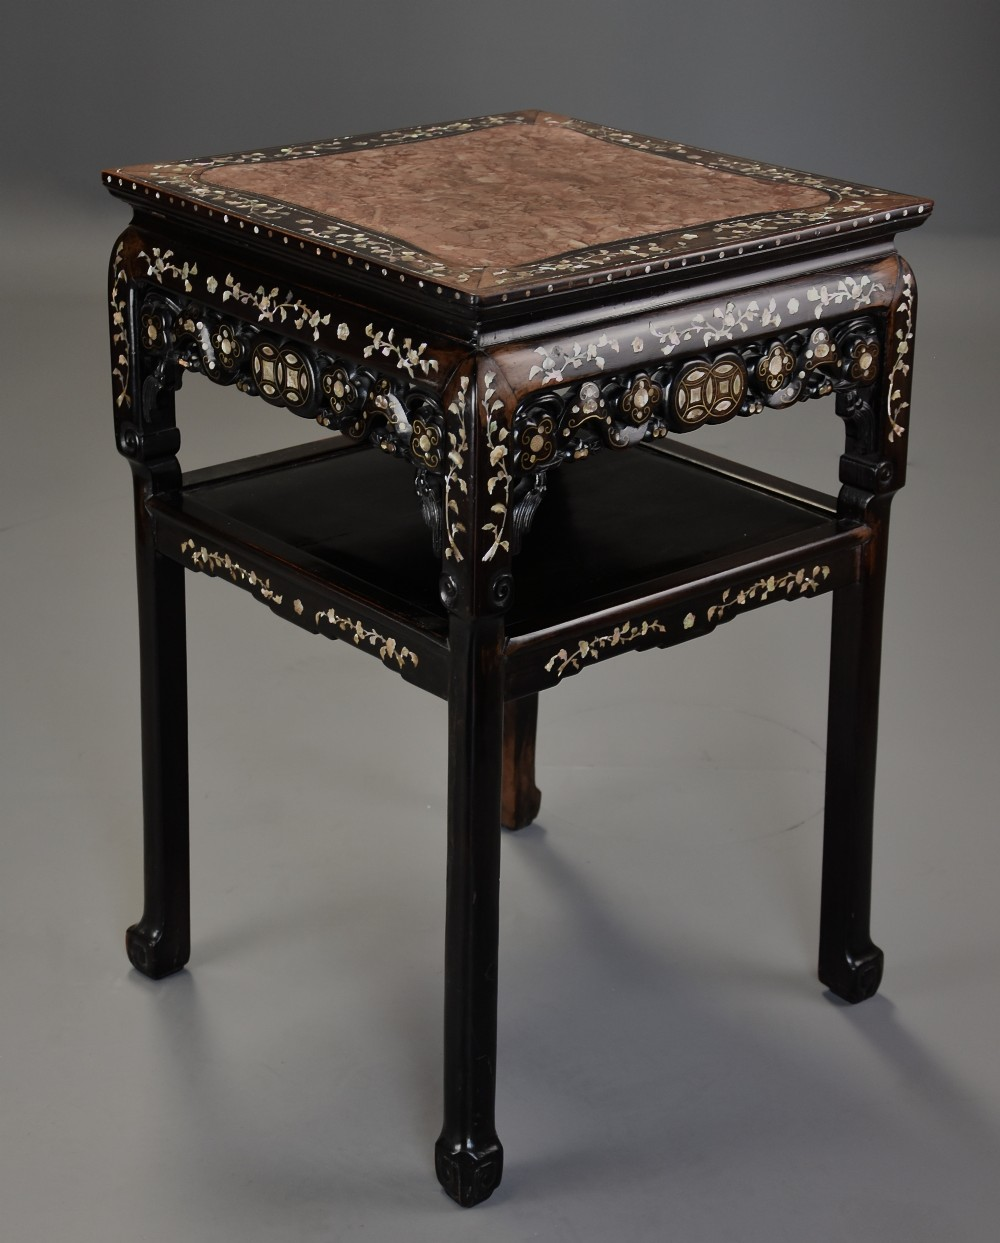 highly decorative late 19thc chinese hardwood mother of pearl square pot stand